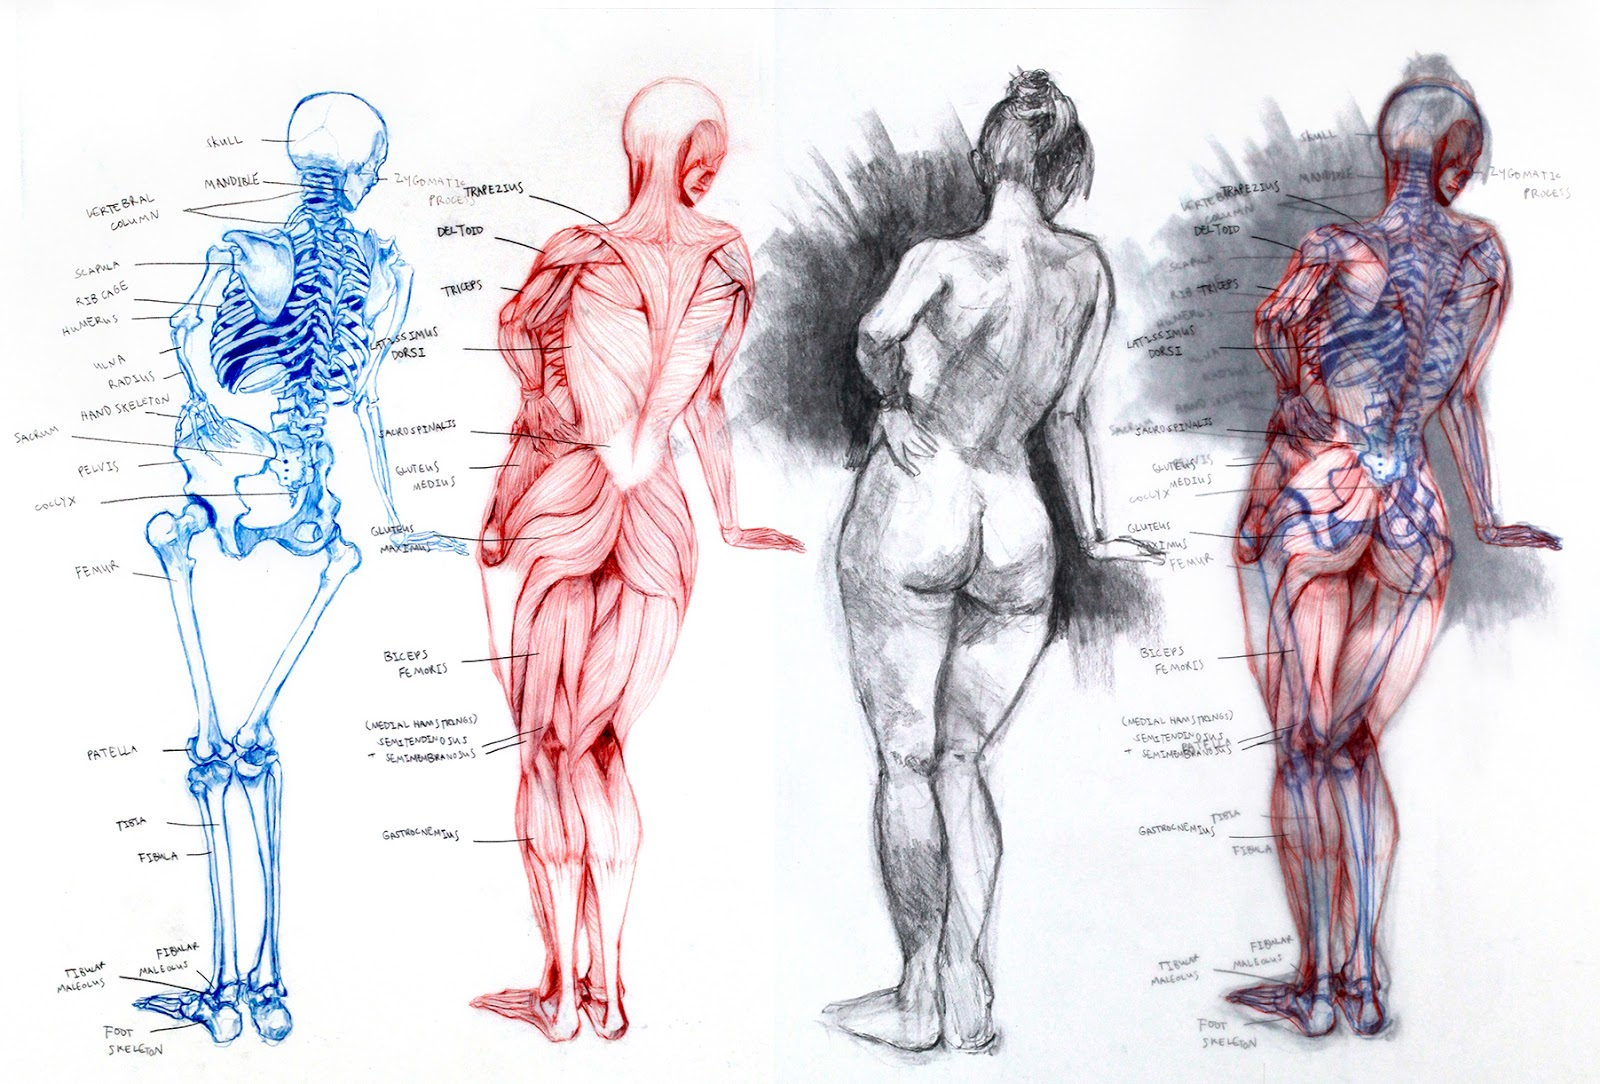 the personal techniques used in sketching the structure of the human anatomy All living structures of human anatomy contain cells, and almost all functions of human physiology are performed in cells or are initiated by cells a human cell typically consists of flexible membranes that enclose cytoplasm, a water-based cellular fluid together with a variety of tiny functioning units.